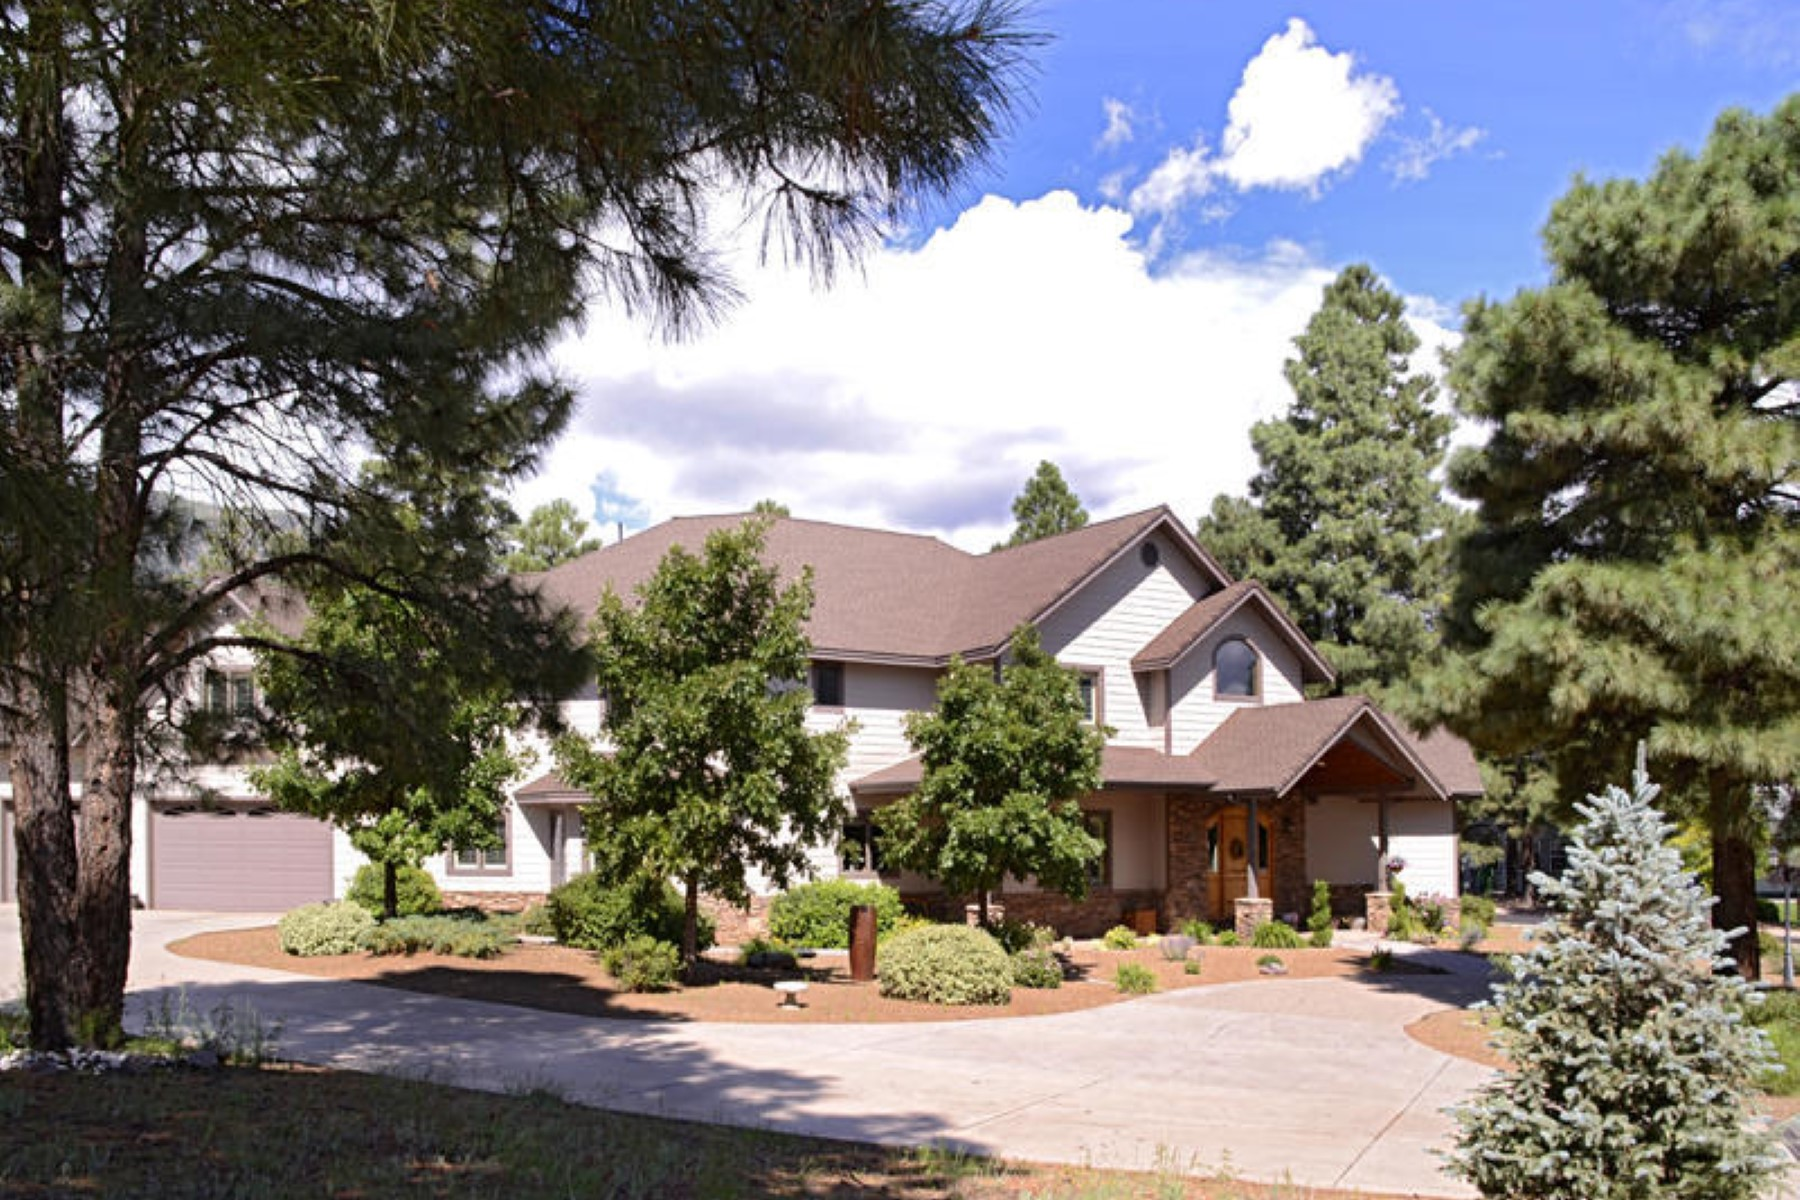 Single Family Home for Sale at Forest Survey Tract 7050 N Oakwood Pines DR Flagstaff, Arizona, 86004 United States